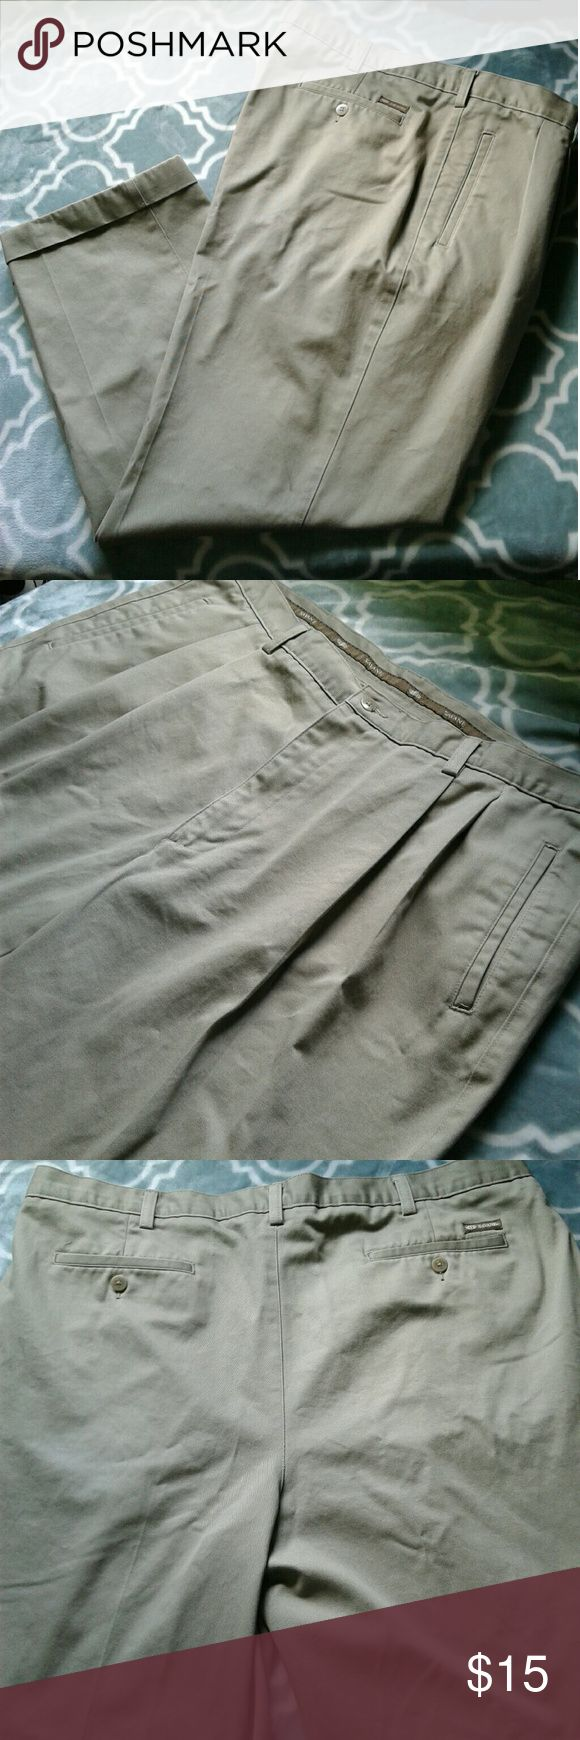 Men's Savane pant Men's very gently pre loved great condition, Savane pleated pant size 42w×29l. small black mark on leg will probably come out in the wash. 2 waist pockets, 2 back button pockets. Thanks for looking!!! Savane Pants Chinos & Khakis